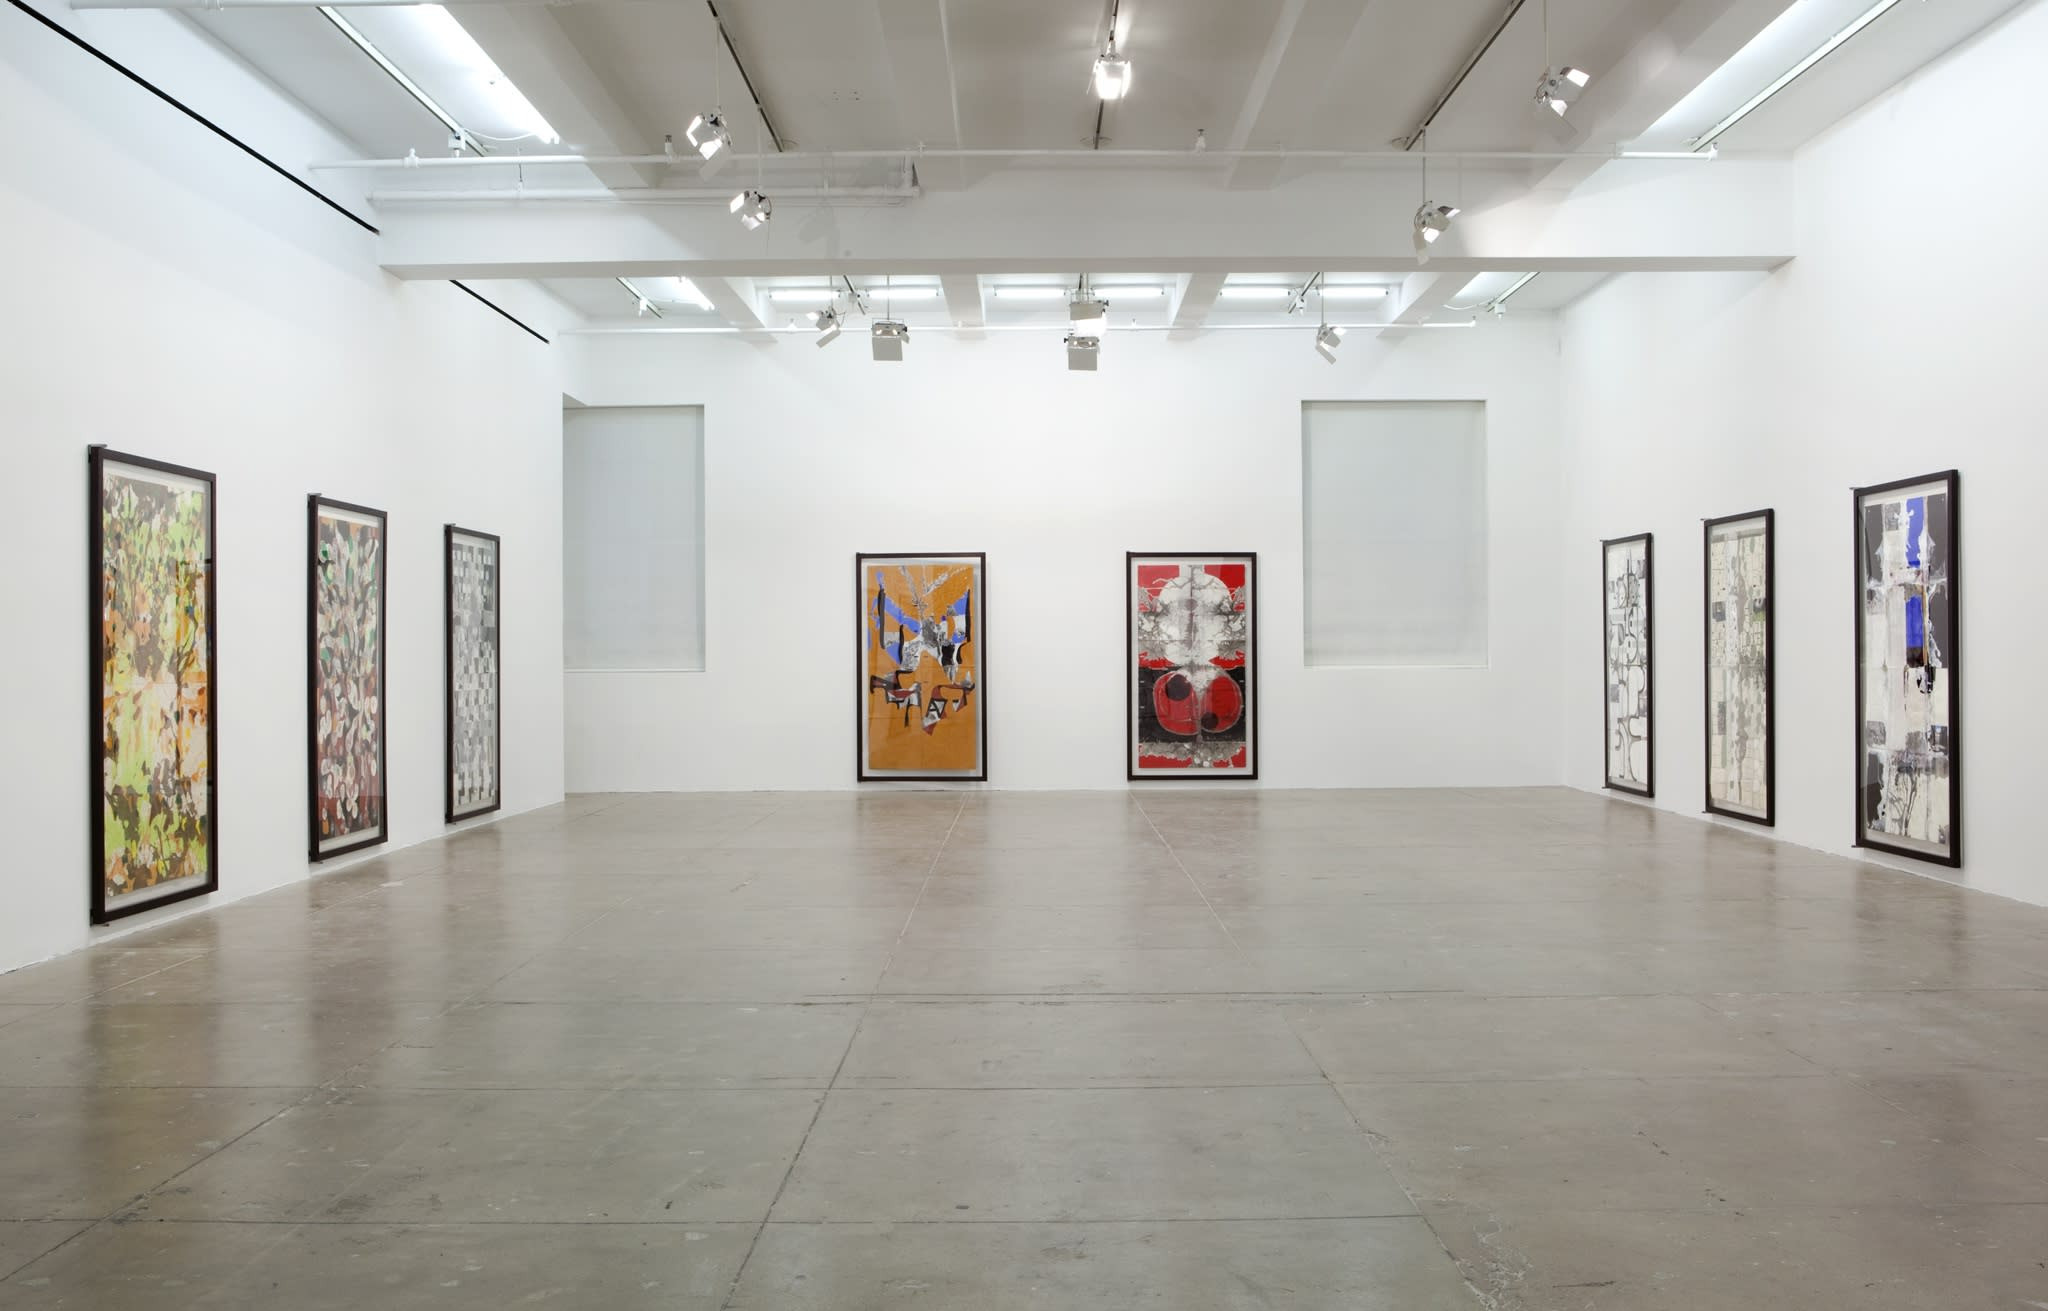 Eight large vertical abstract paintings fill the walls of a large white room.